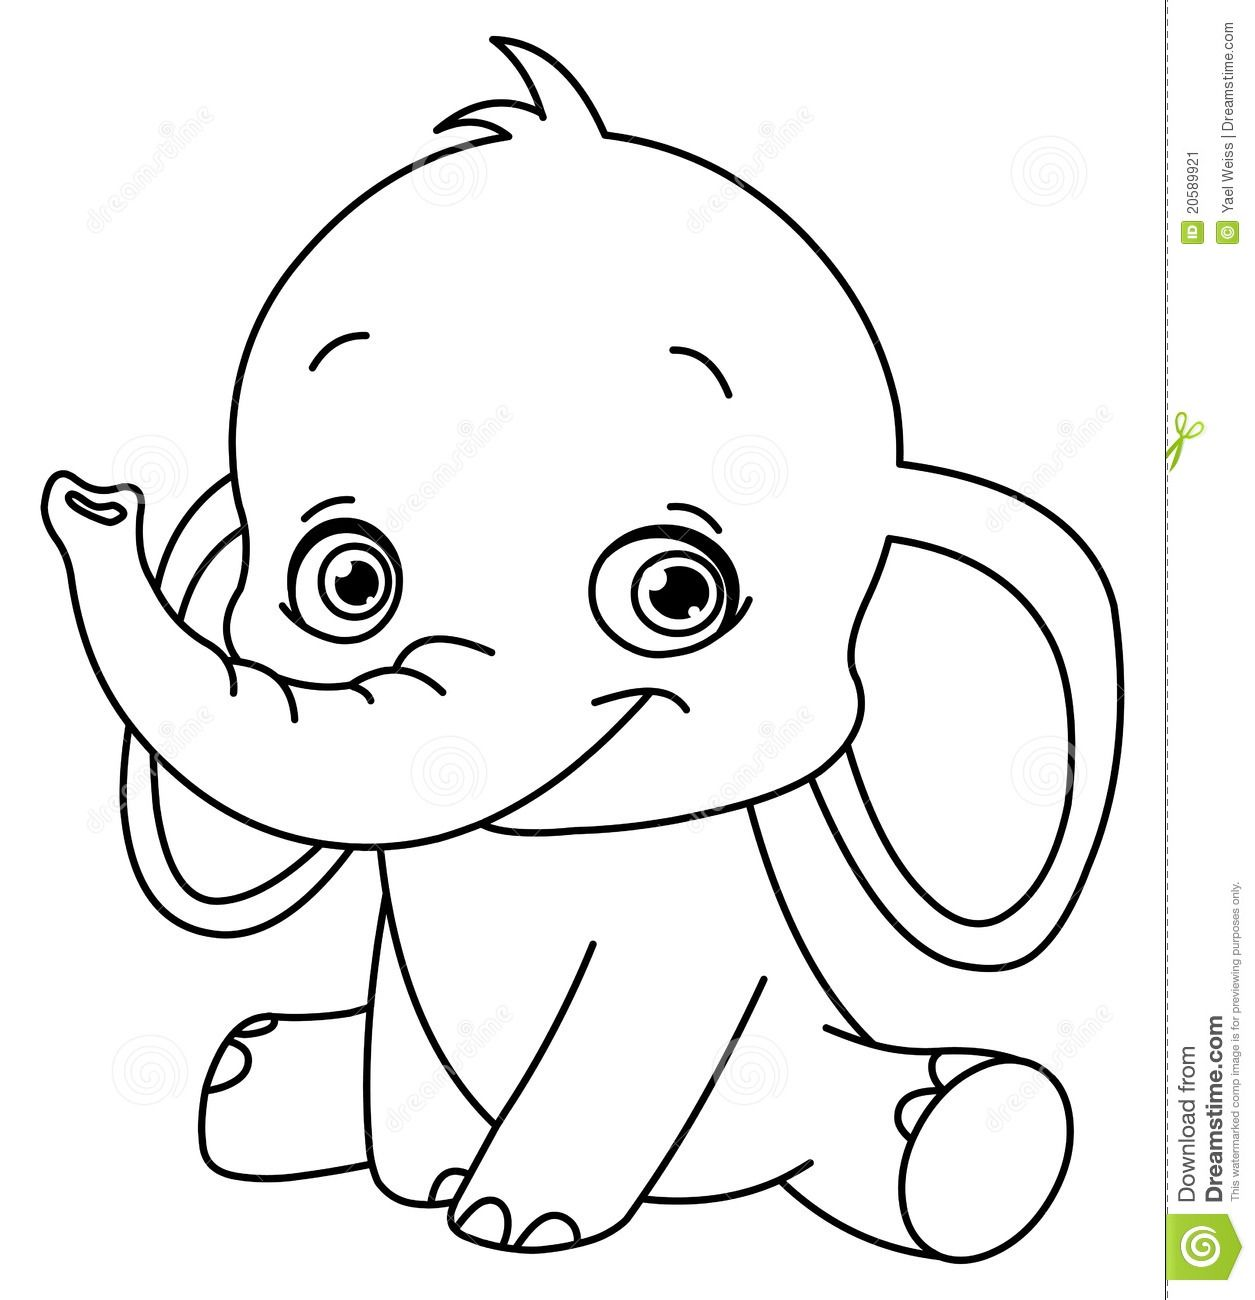 coloring pages elephant # 1